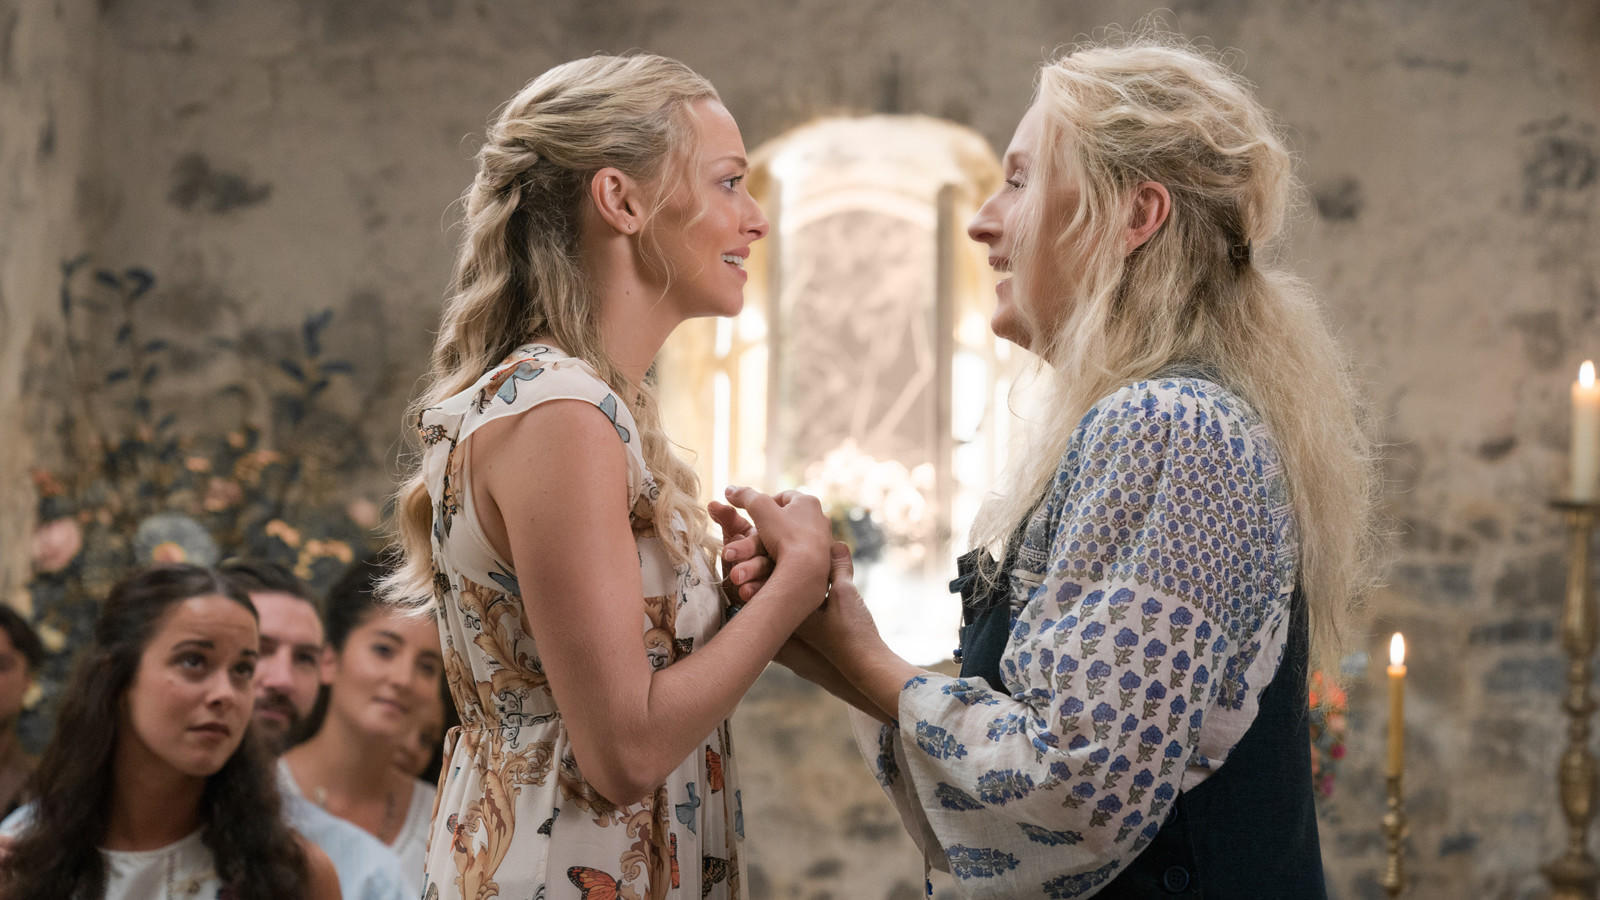 Review: Does 'Mamma Mia! Here We Go Again' improve on the original? ABBA-solutely!